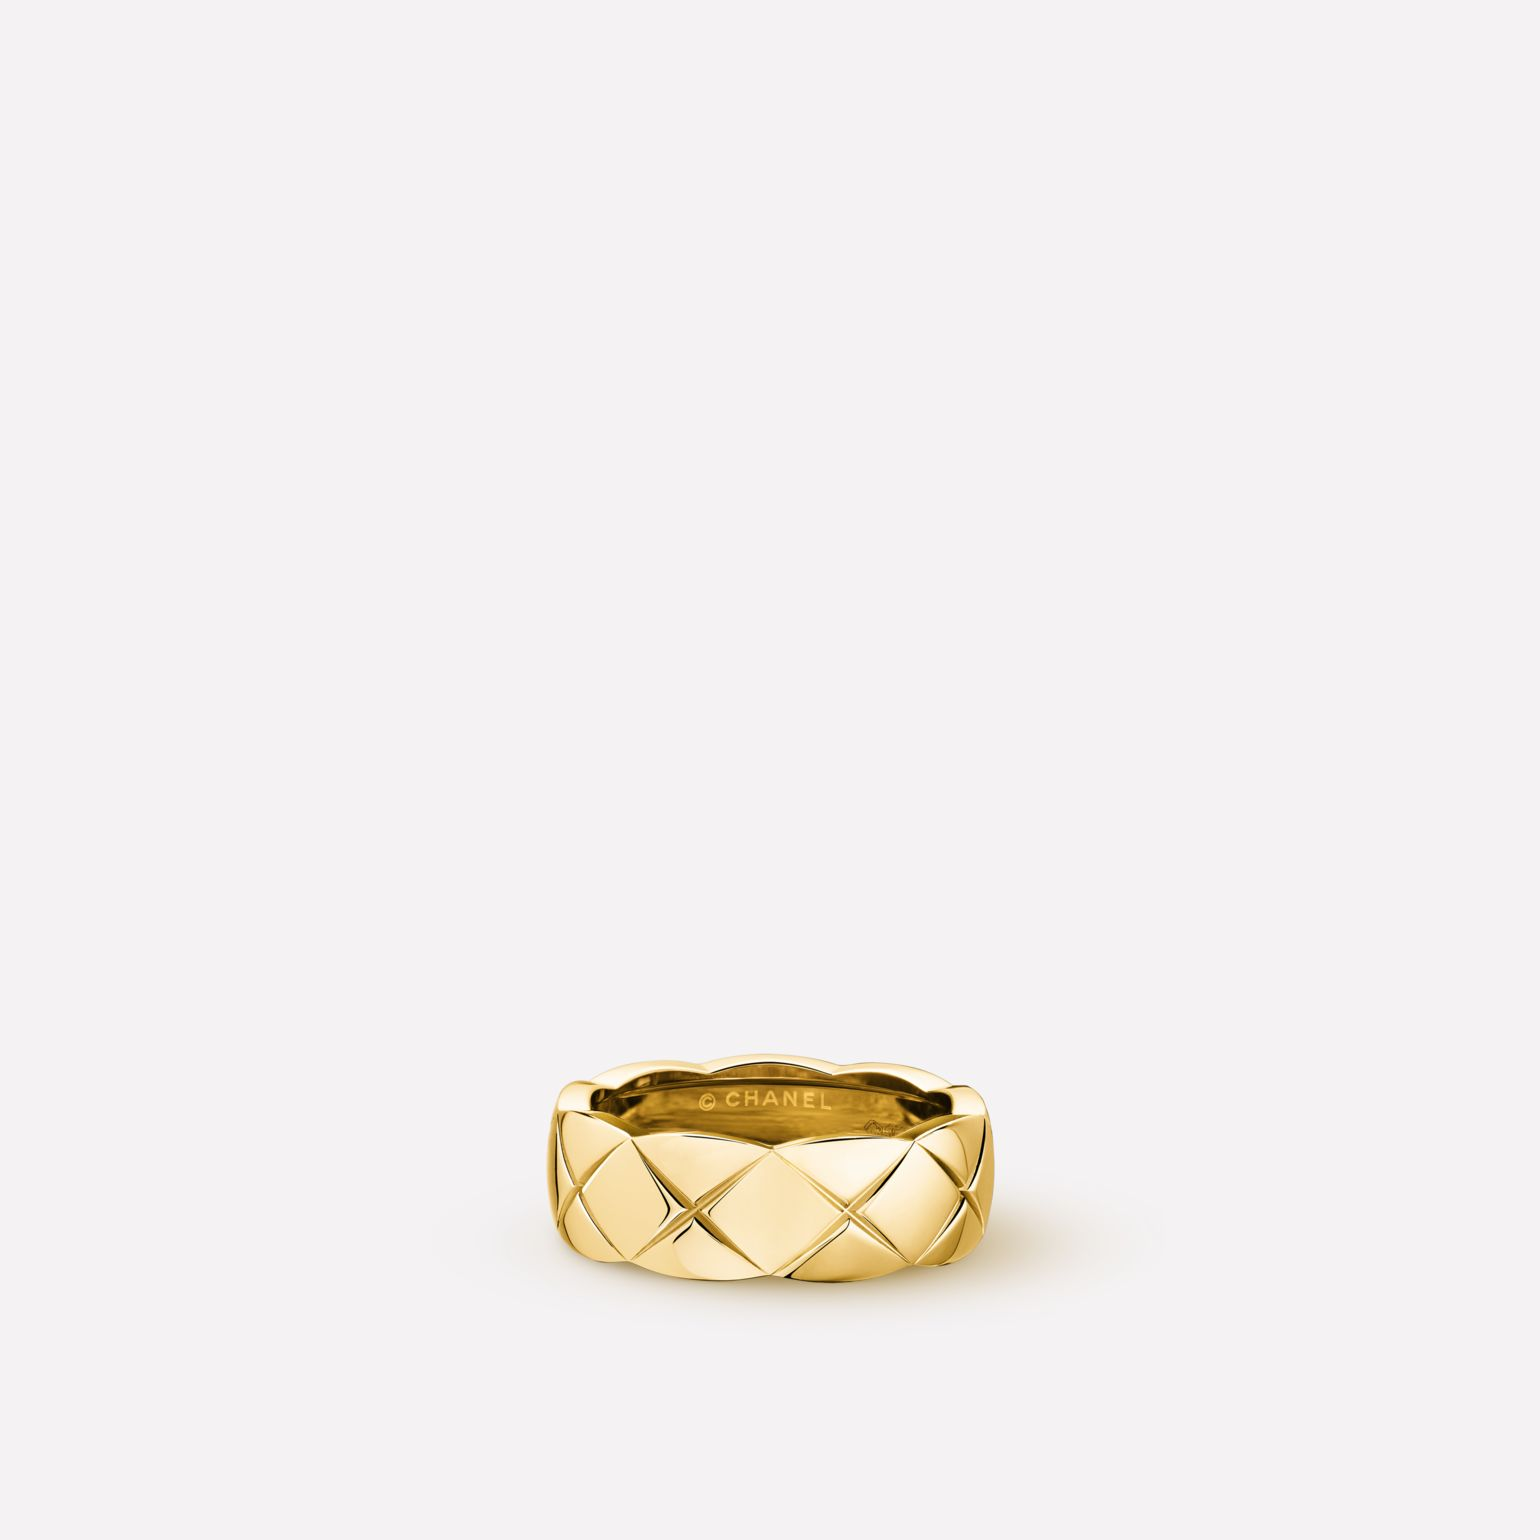 Coco Crush ring Quilted motif, small version, 18K yellow gold